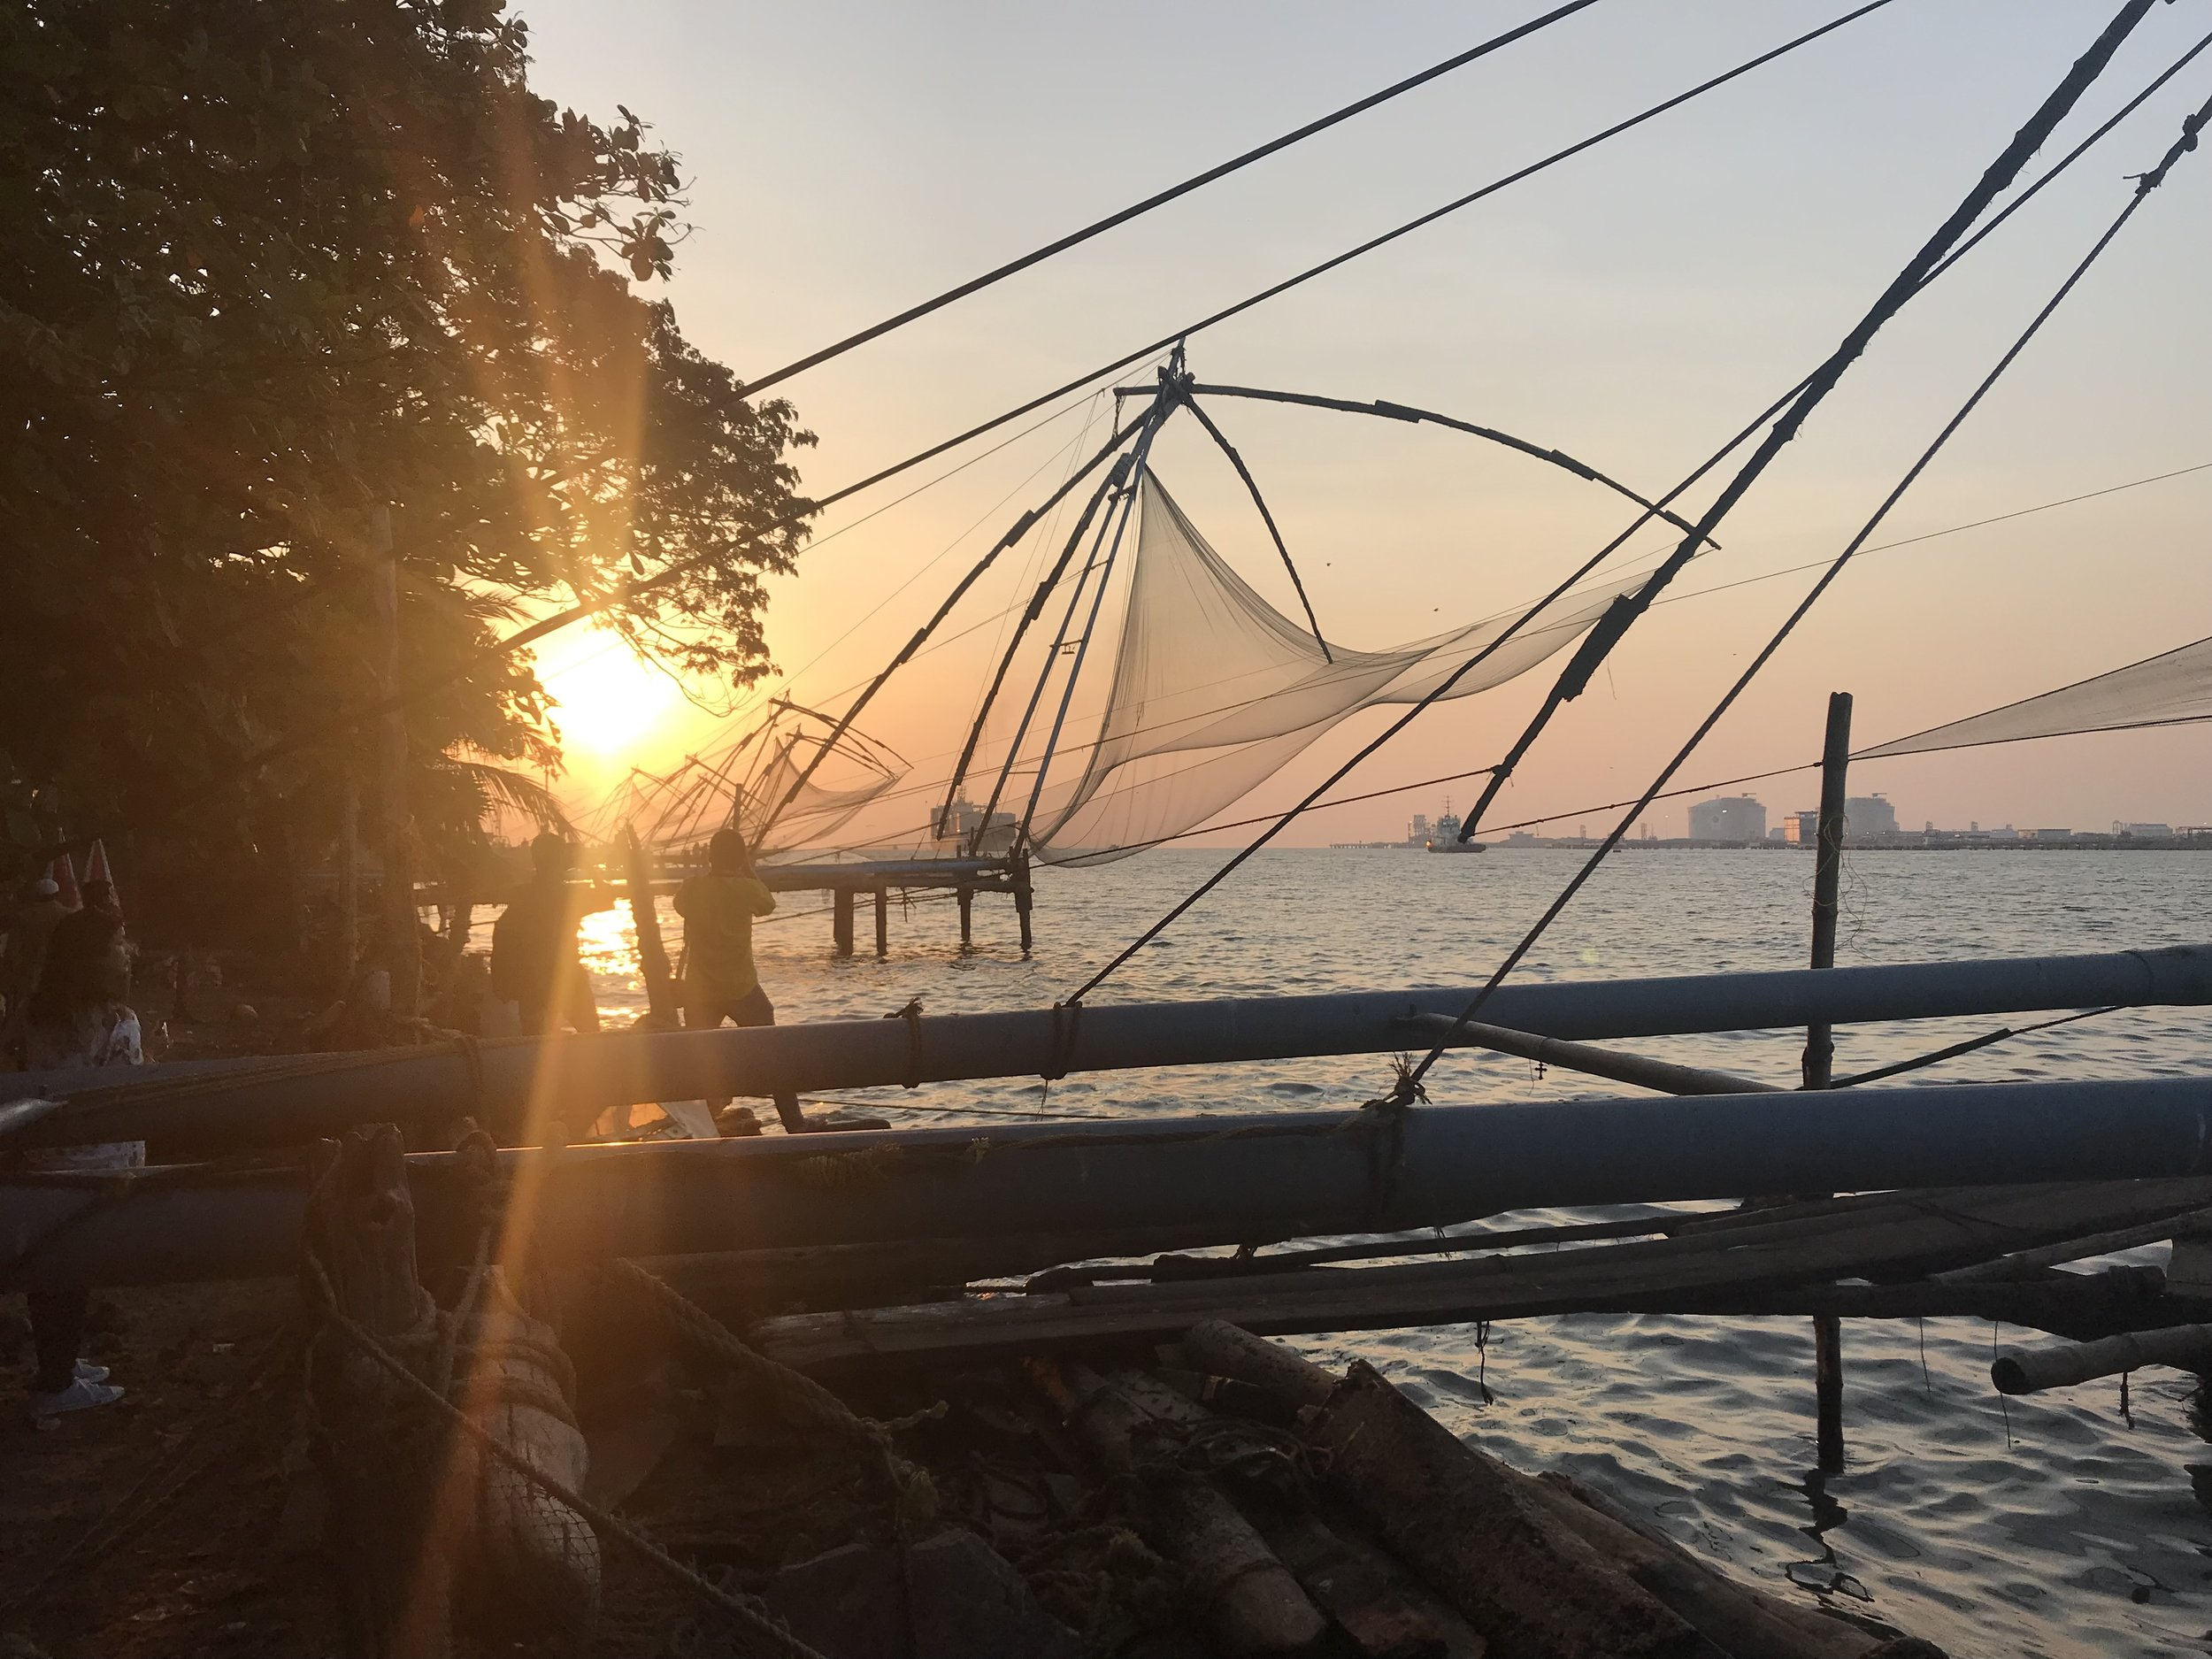 Another shot, this time of a row of fishing nets during sunset.